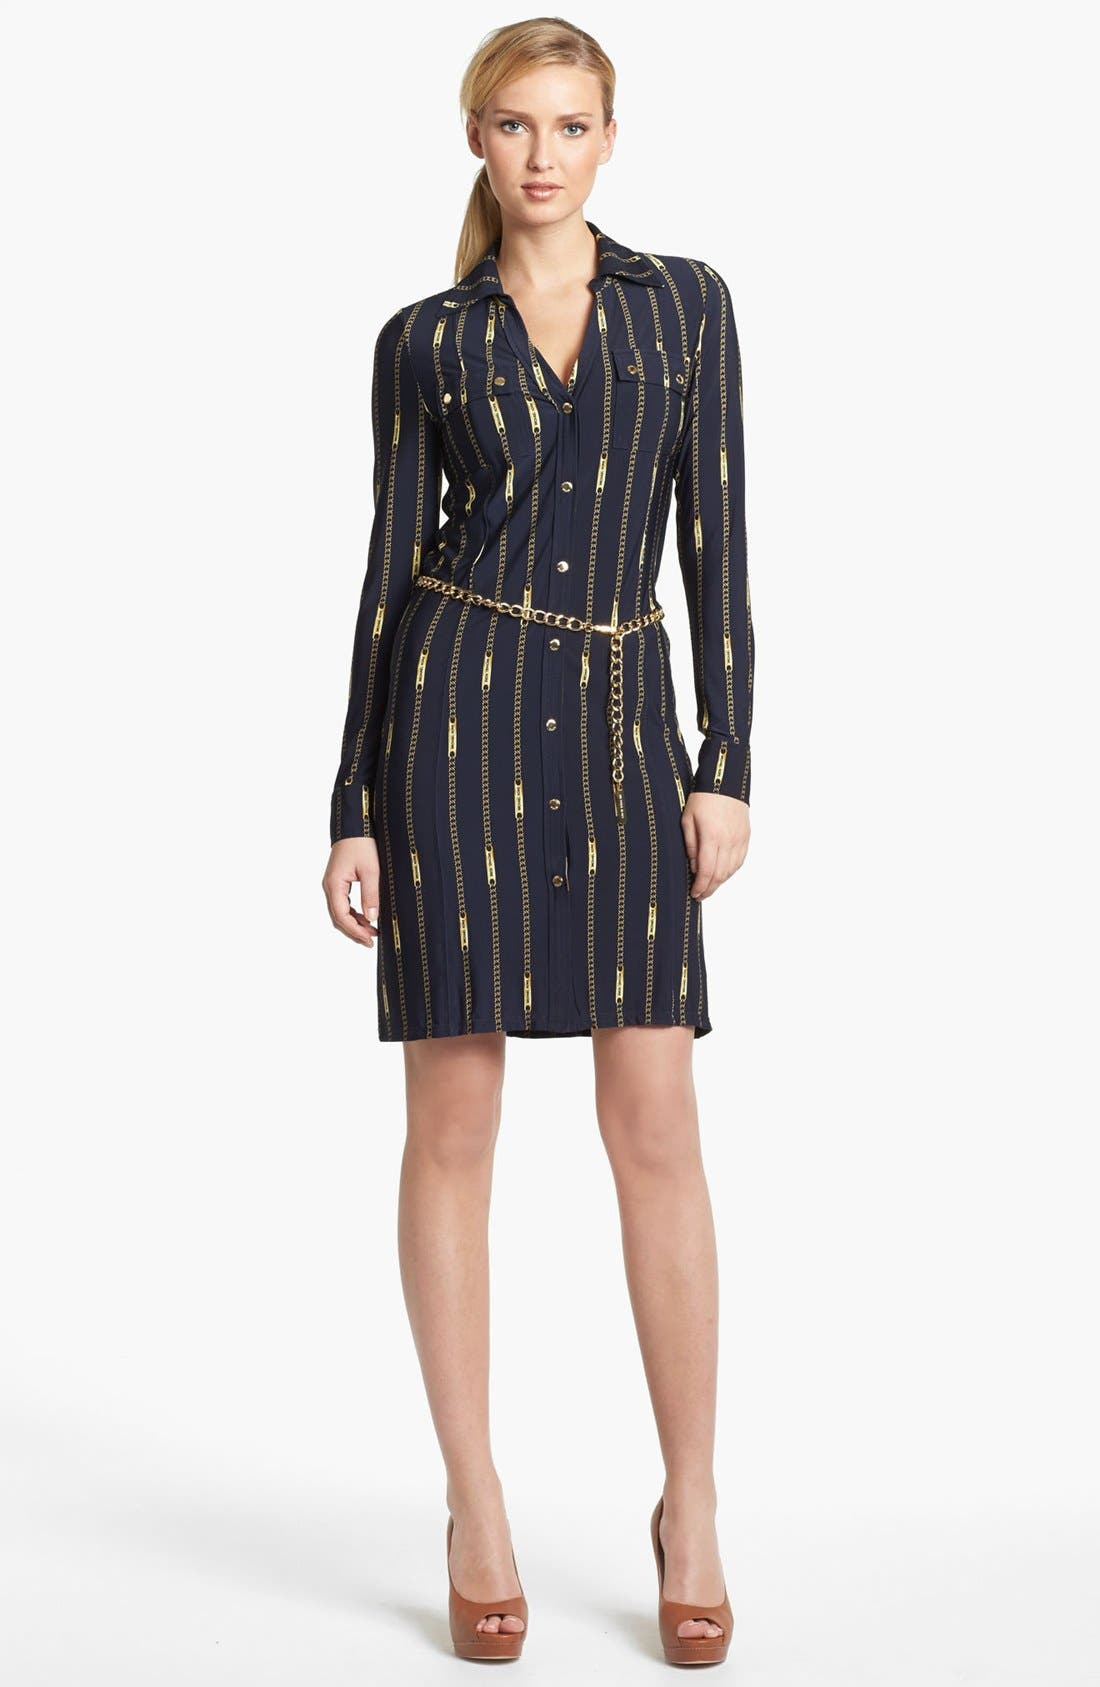 Alternate Image 1 Selected - MICHAEL Michael Kors Belted Print Shirtdress (Regular & Petite)